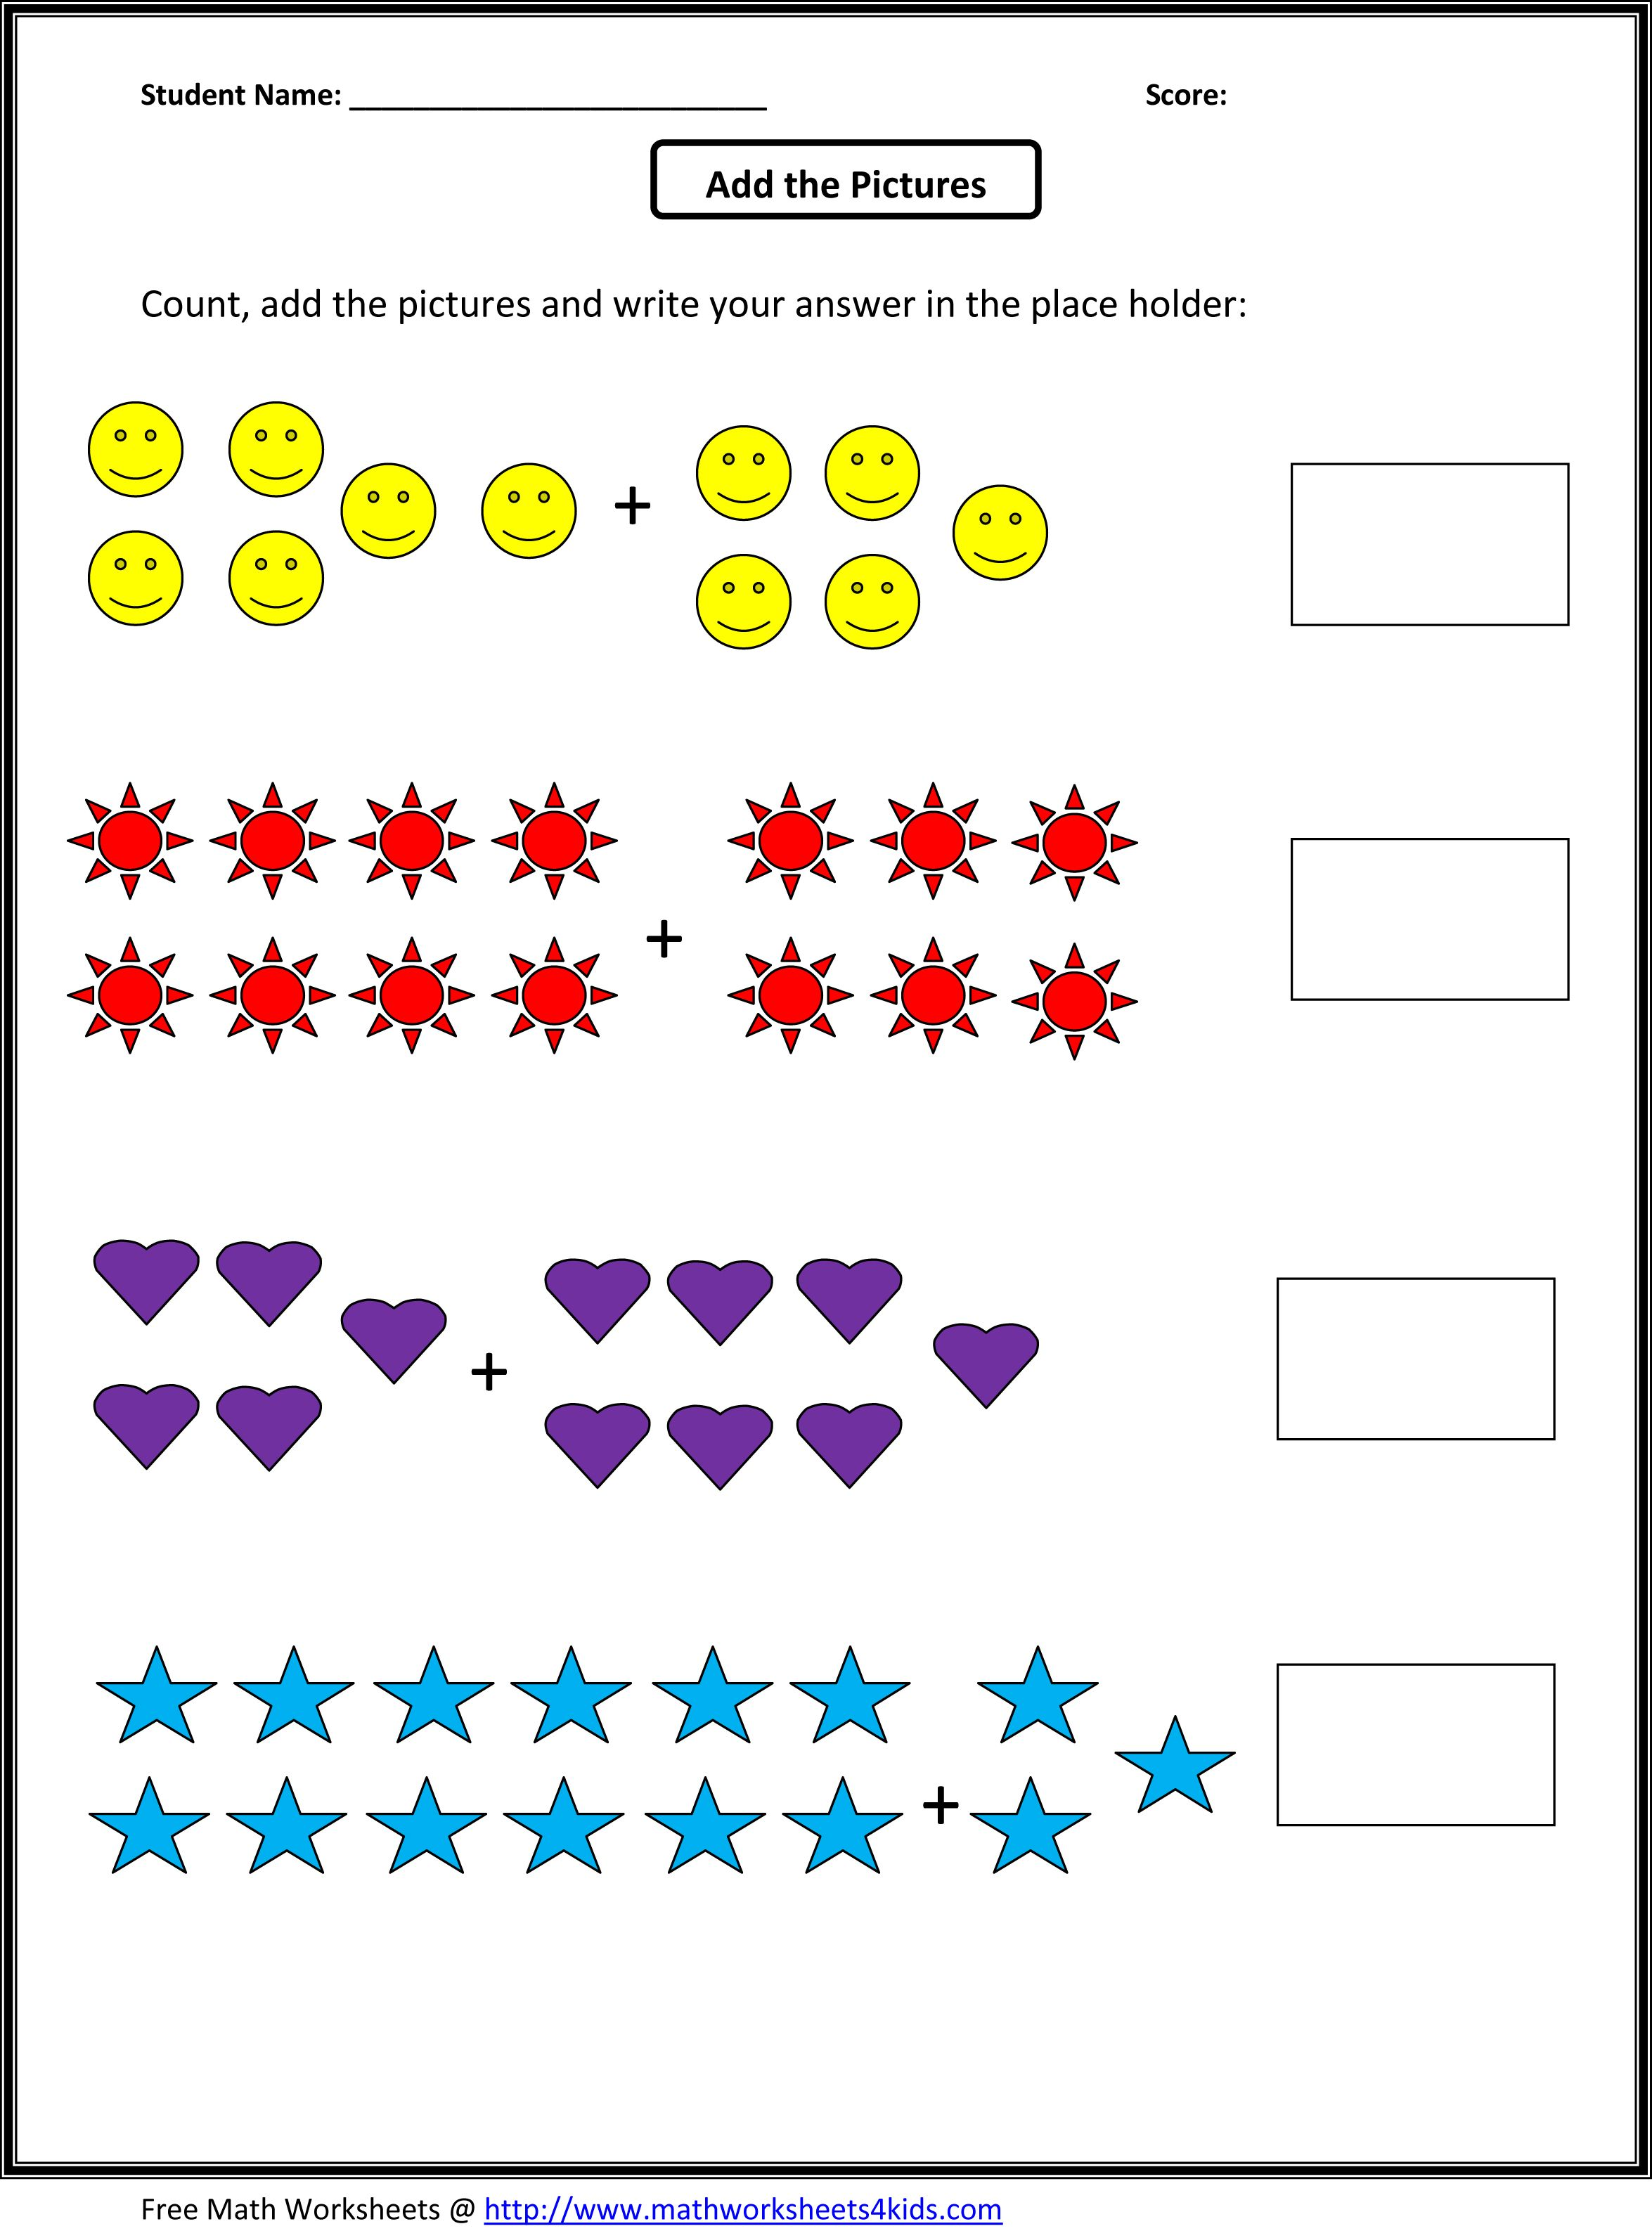 Aldiablosus  Surprising Worksheet For Math Grade   Coffemix With Luxury  Images About School On Pinterest  Mental Maths Worksheets  With Nice Grade  Comprehension Worksheets Free Also Rebus Puzzles Printable Worksheets In Addition Mother And Baby Animals Worksheets For Preschool And Count Worksheets As Well As Homophones Worksheets Free Additionally Writing Numbers  Worksheet From Coffemixcom With Aldiablosus  Luxury Worksheet For Math Grade   Coffemix With Nice  Images About School On Pinterest  Mental Maths Worksheets  And Surprising Grade  Comprehension Worksheets Free Also Rebus Puzzles Printable Worksheets In Addition Mother And Baby Animals Worksheets For Preschool From Coffemixcom